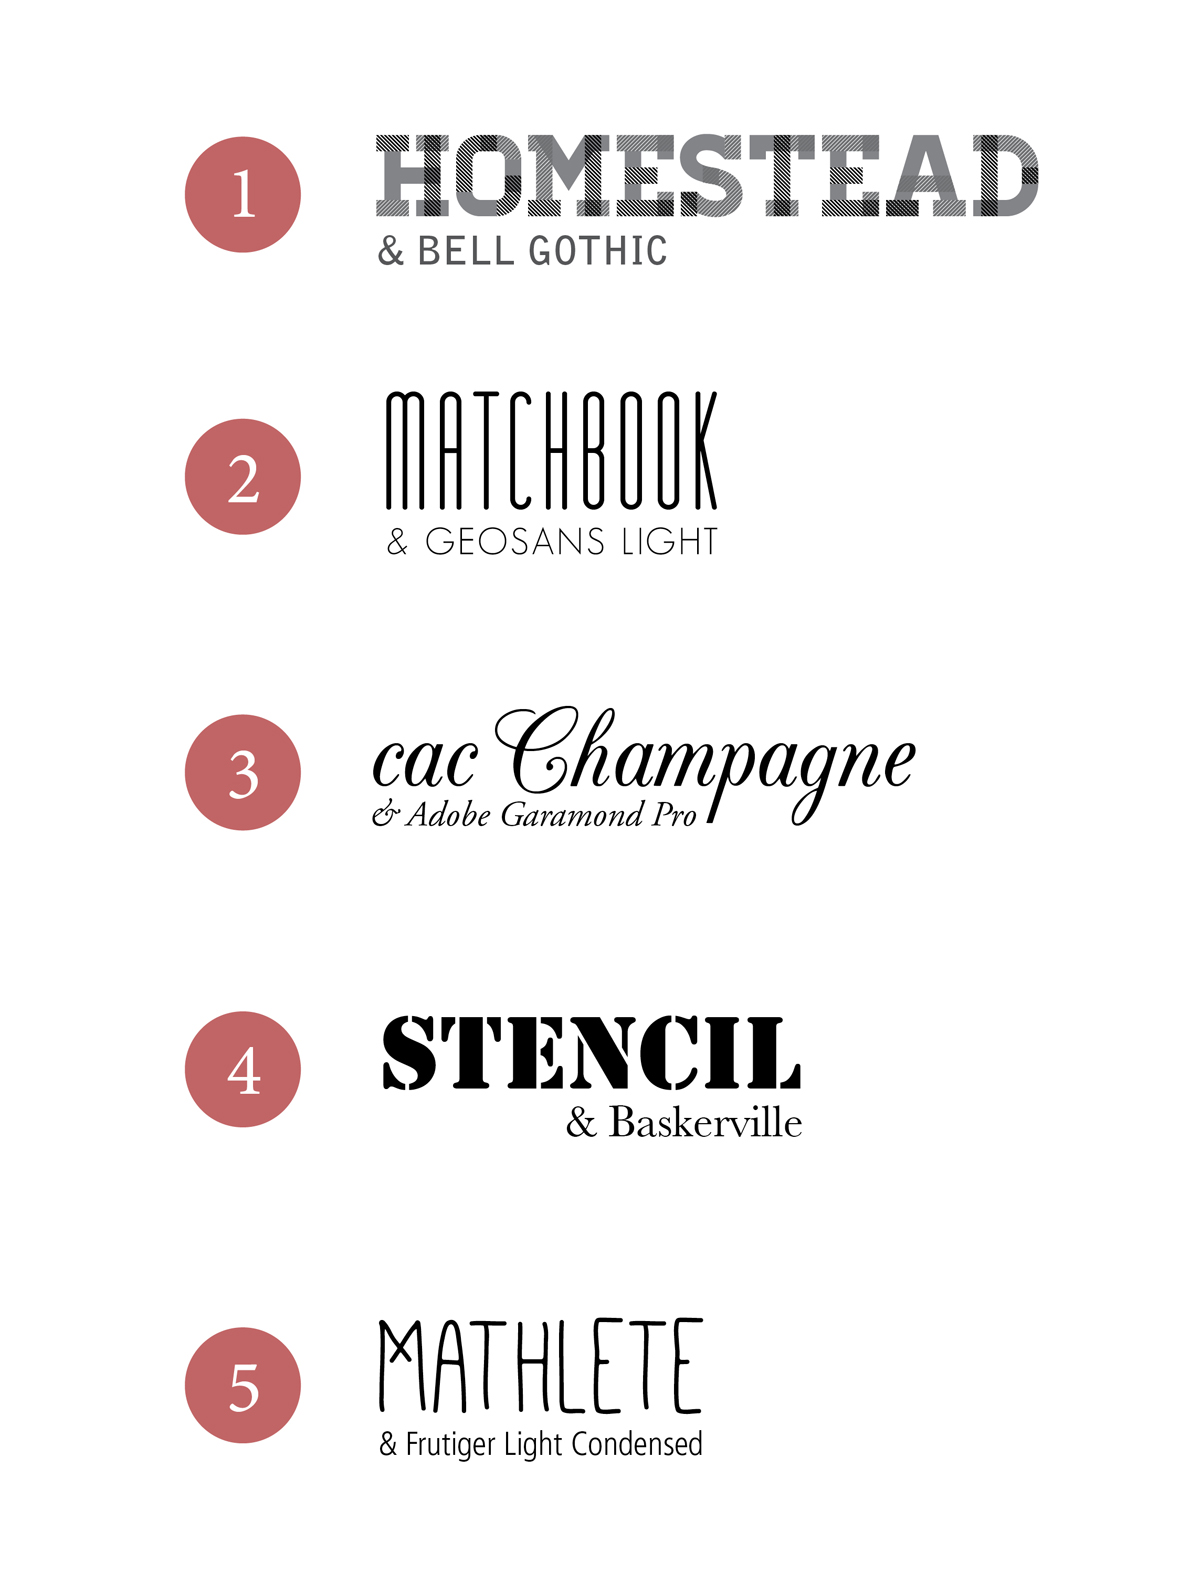 17 Great Font Pairings Images - Top Font Combinations, Wedding Font